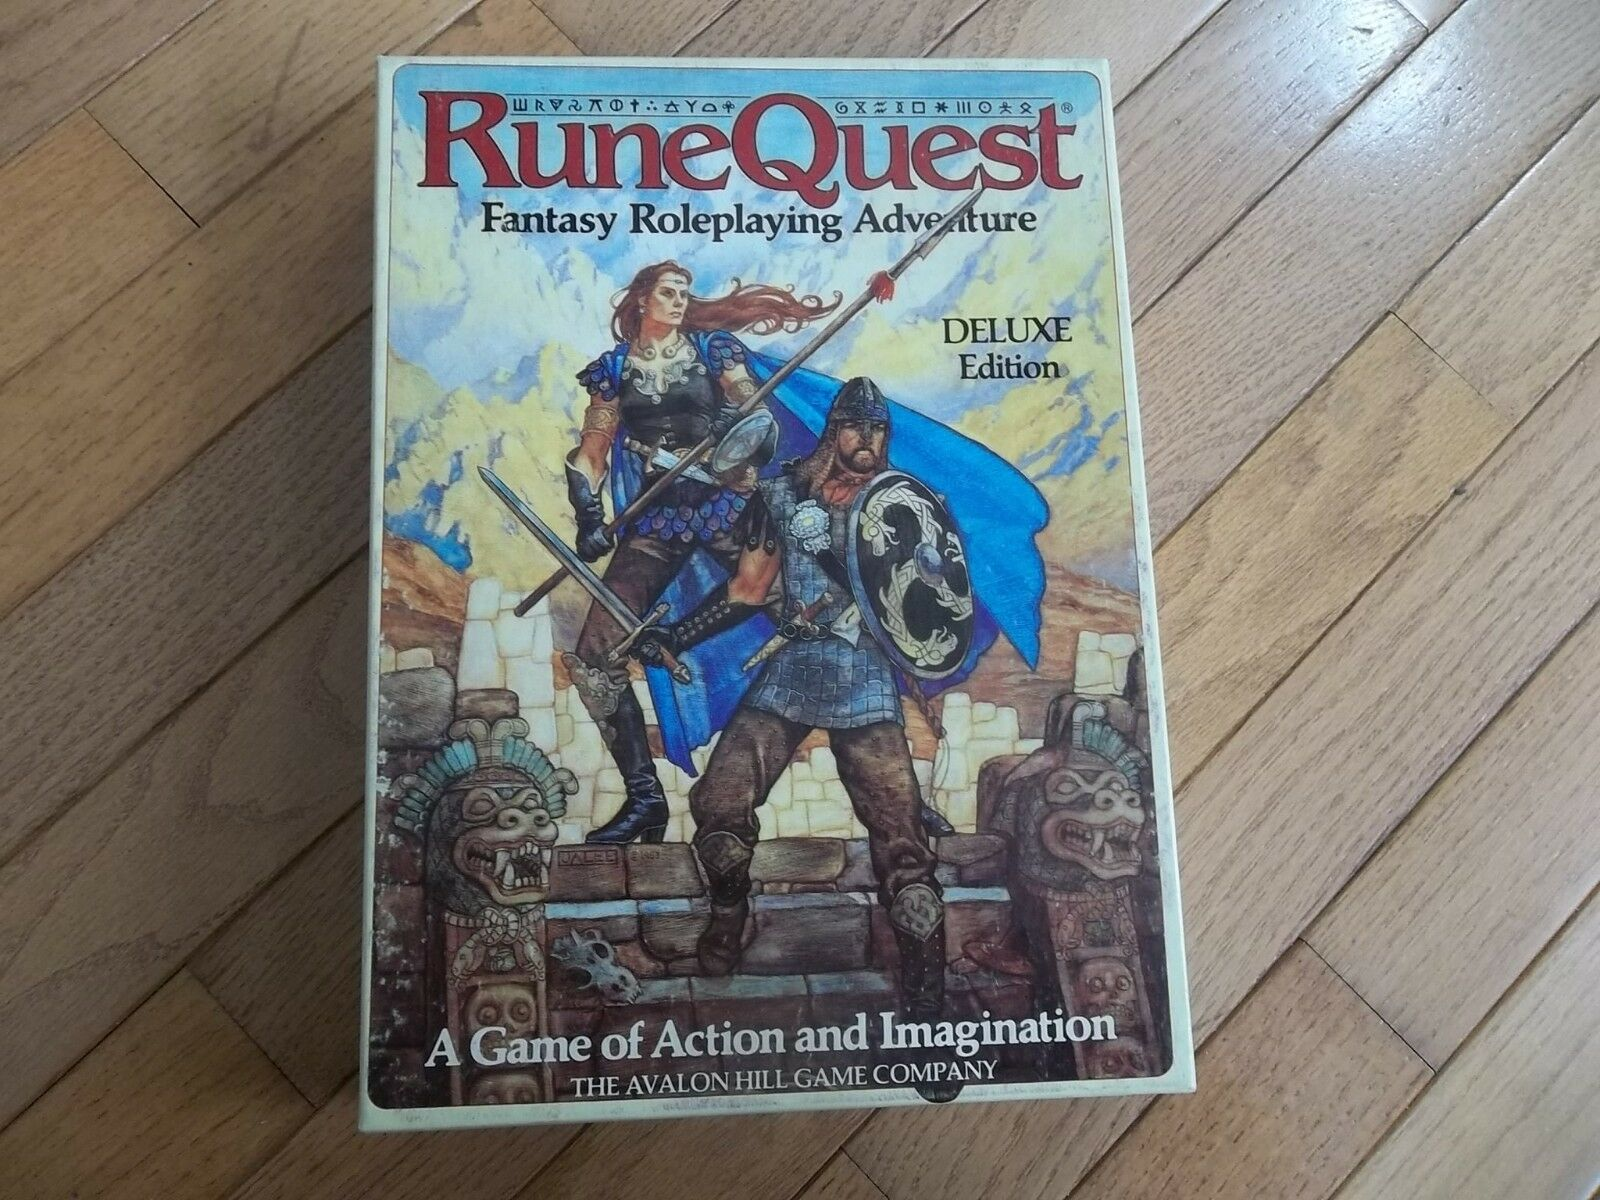 Avalon Hill juego RuneQuest 3rd Deluxe Edition Box Set